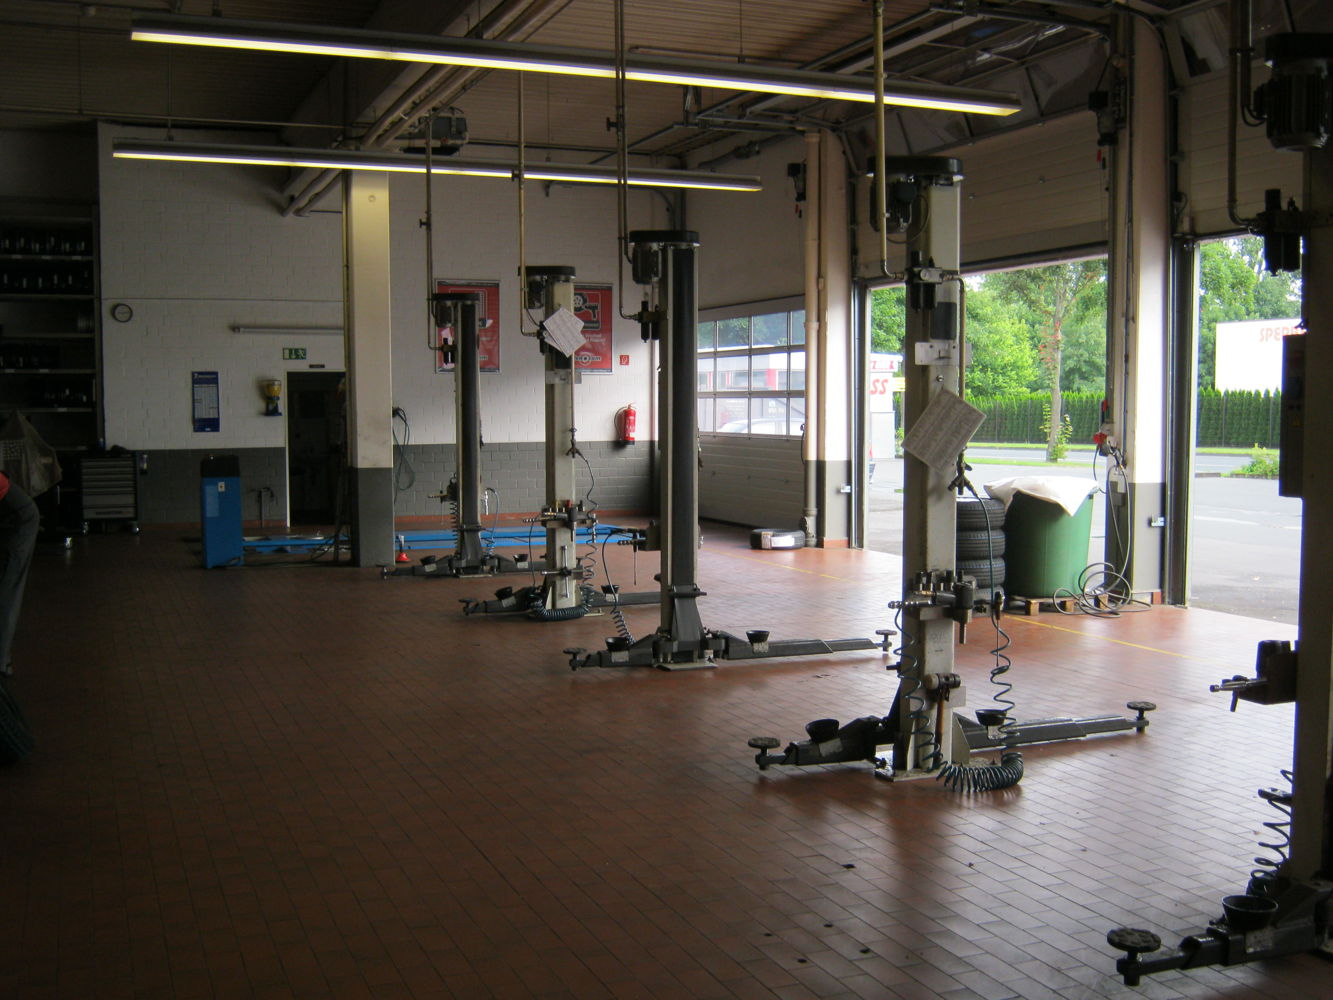 Lifting platforms